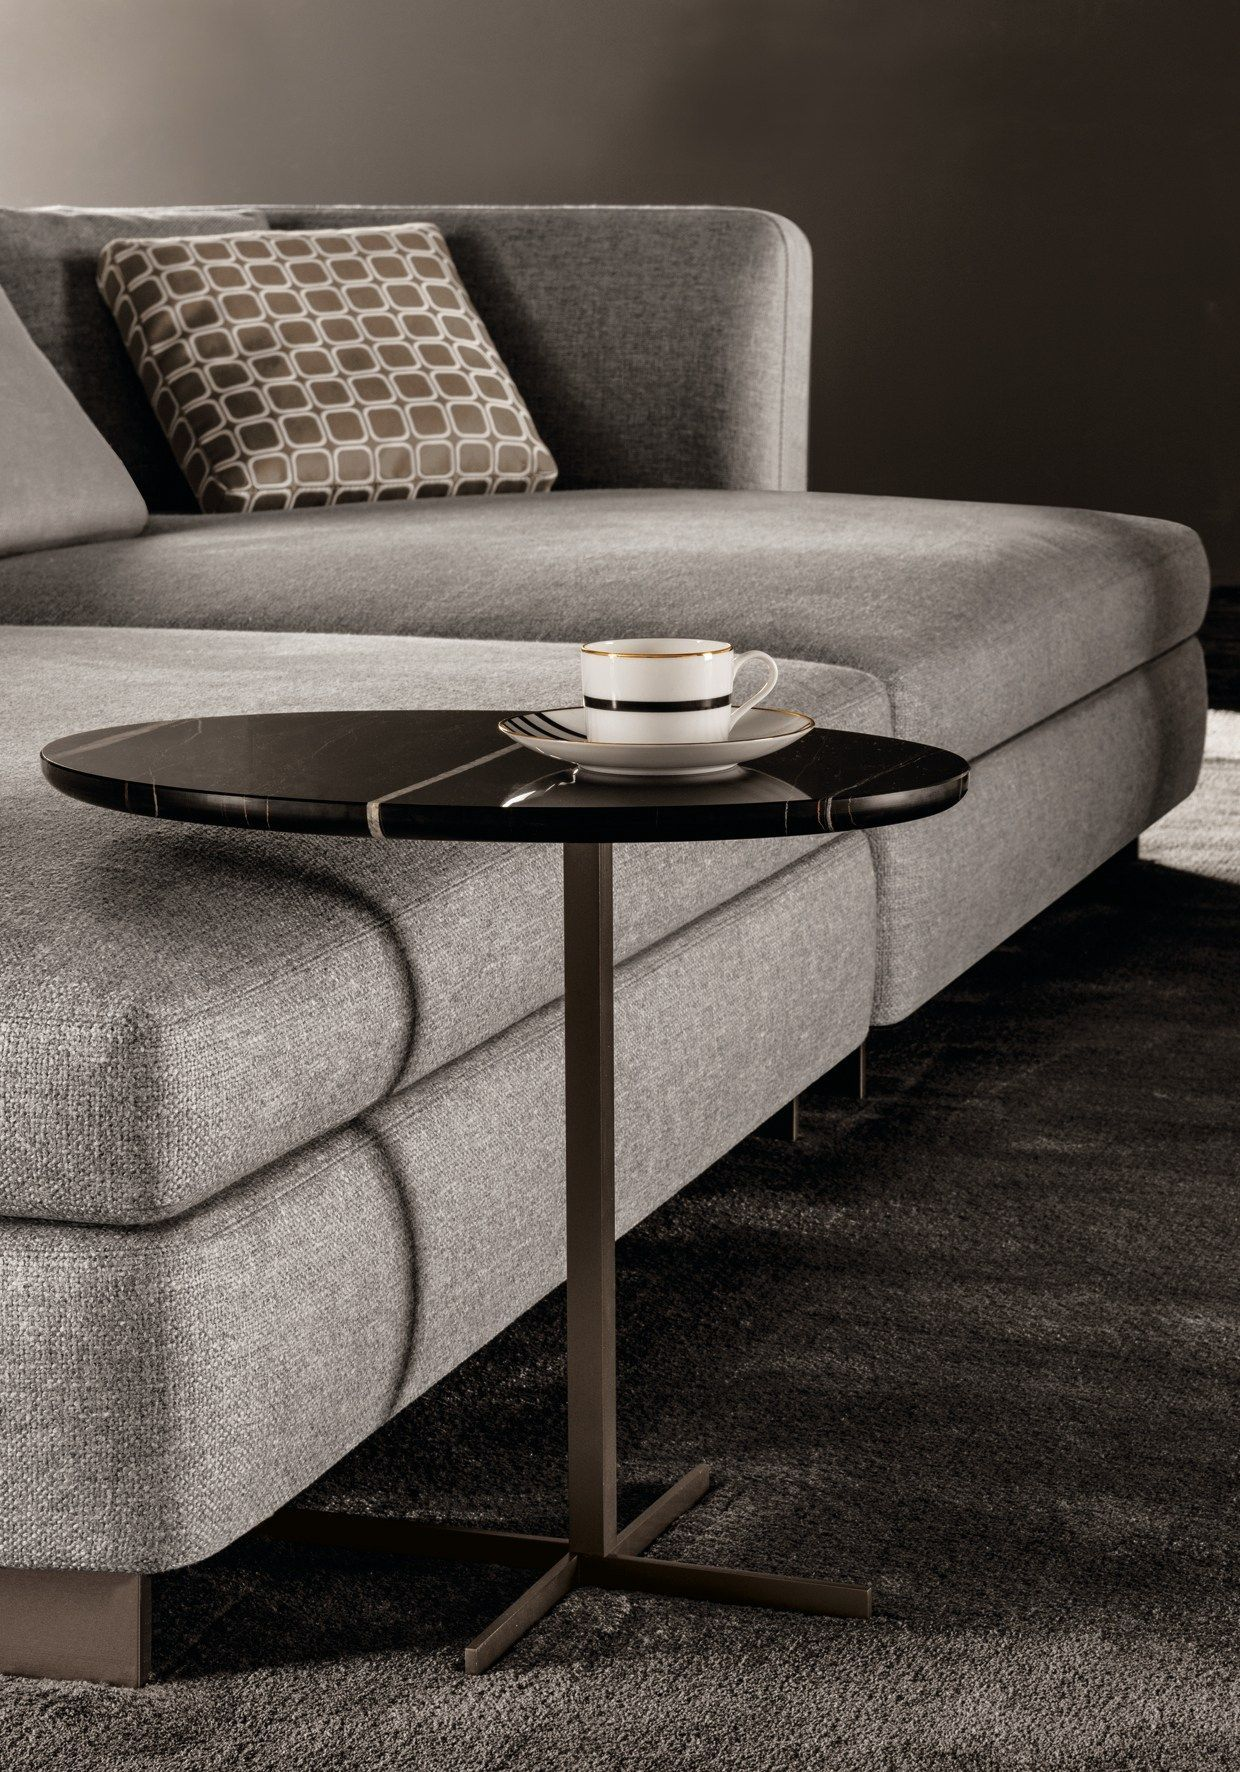 The 7 Modern Side Tables For Your Home Decor You Need To Have Table Decor Living Room Furniture Table Furniture